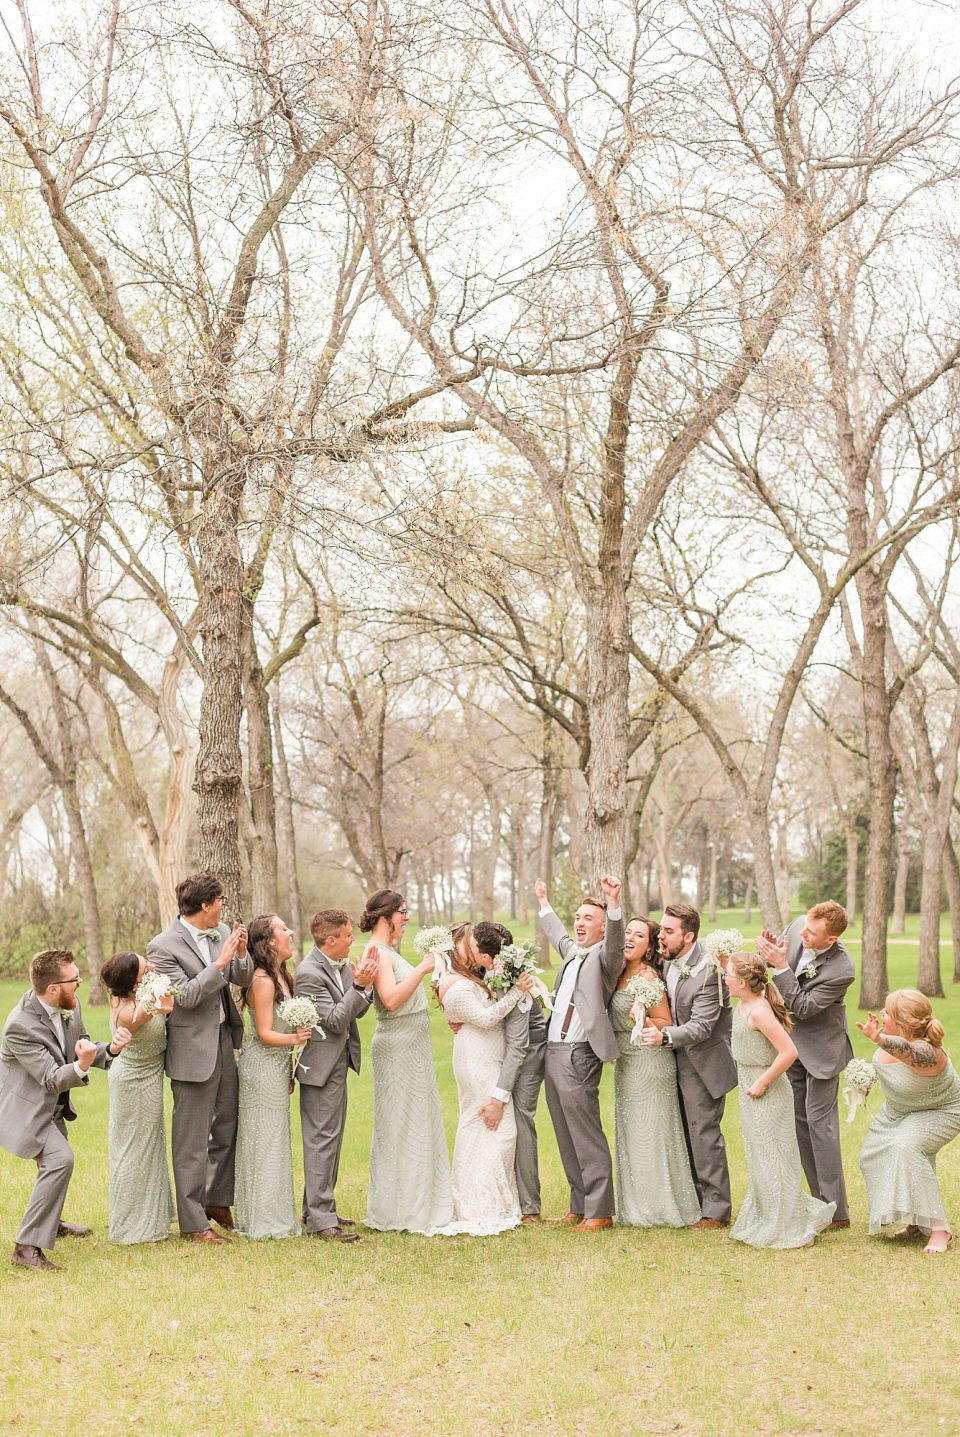 A wedding party in sea-foam green and grey cheer for the newlyweds